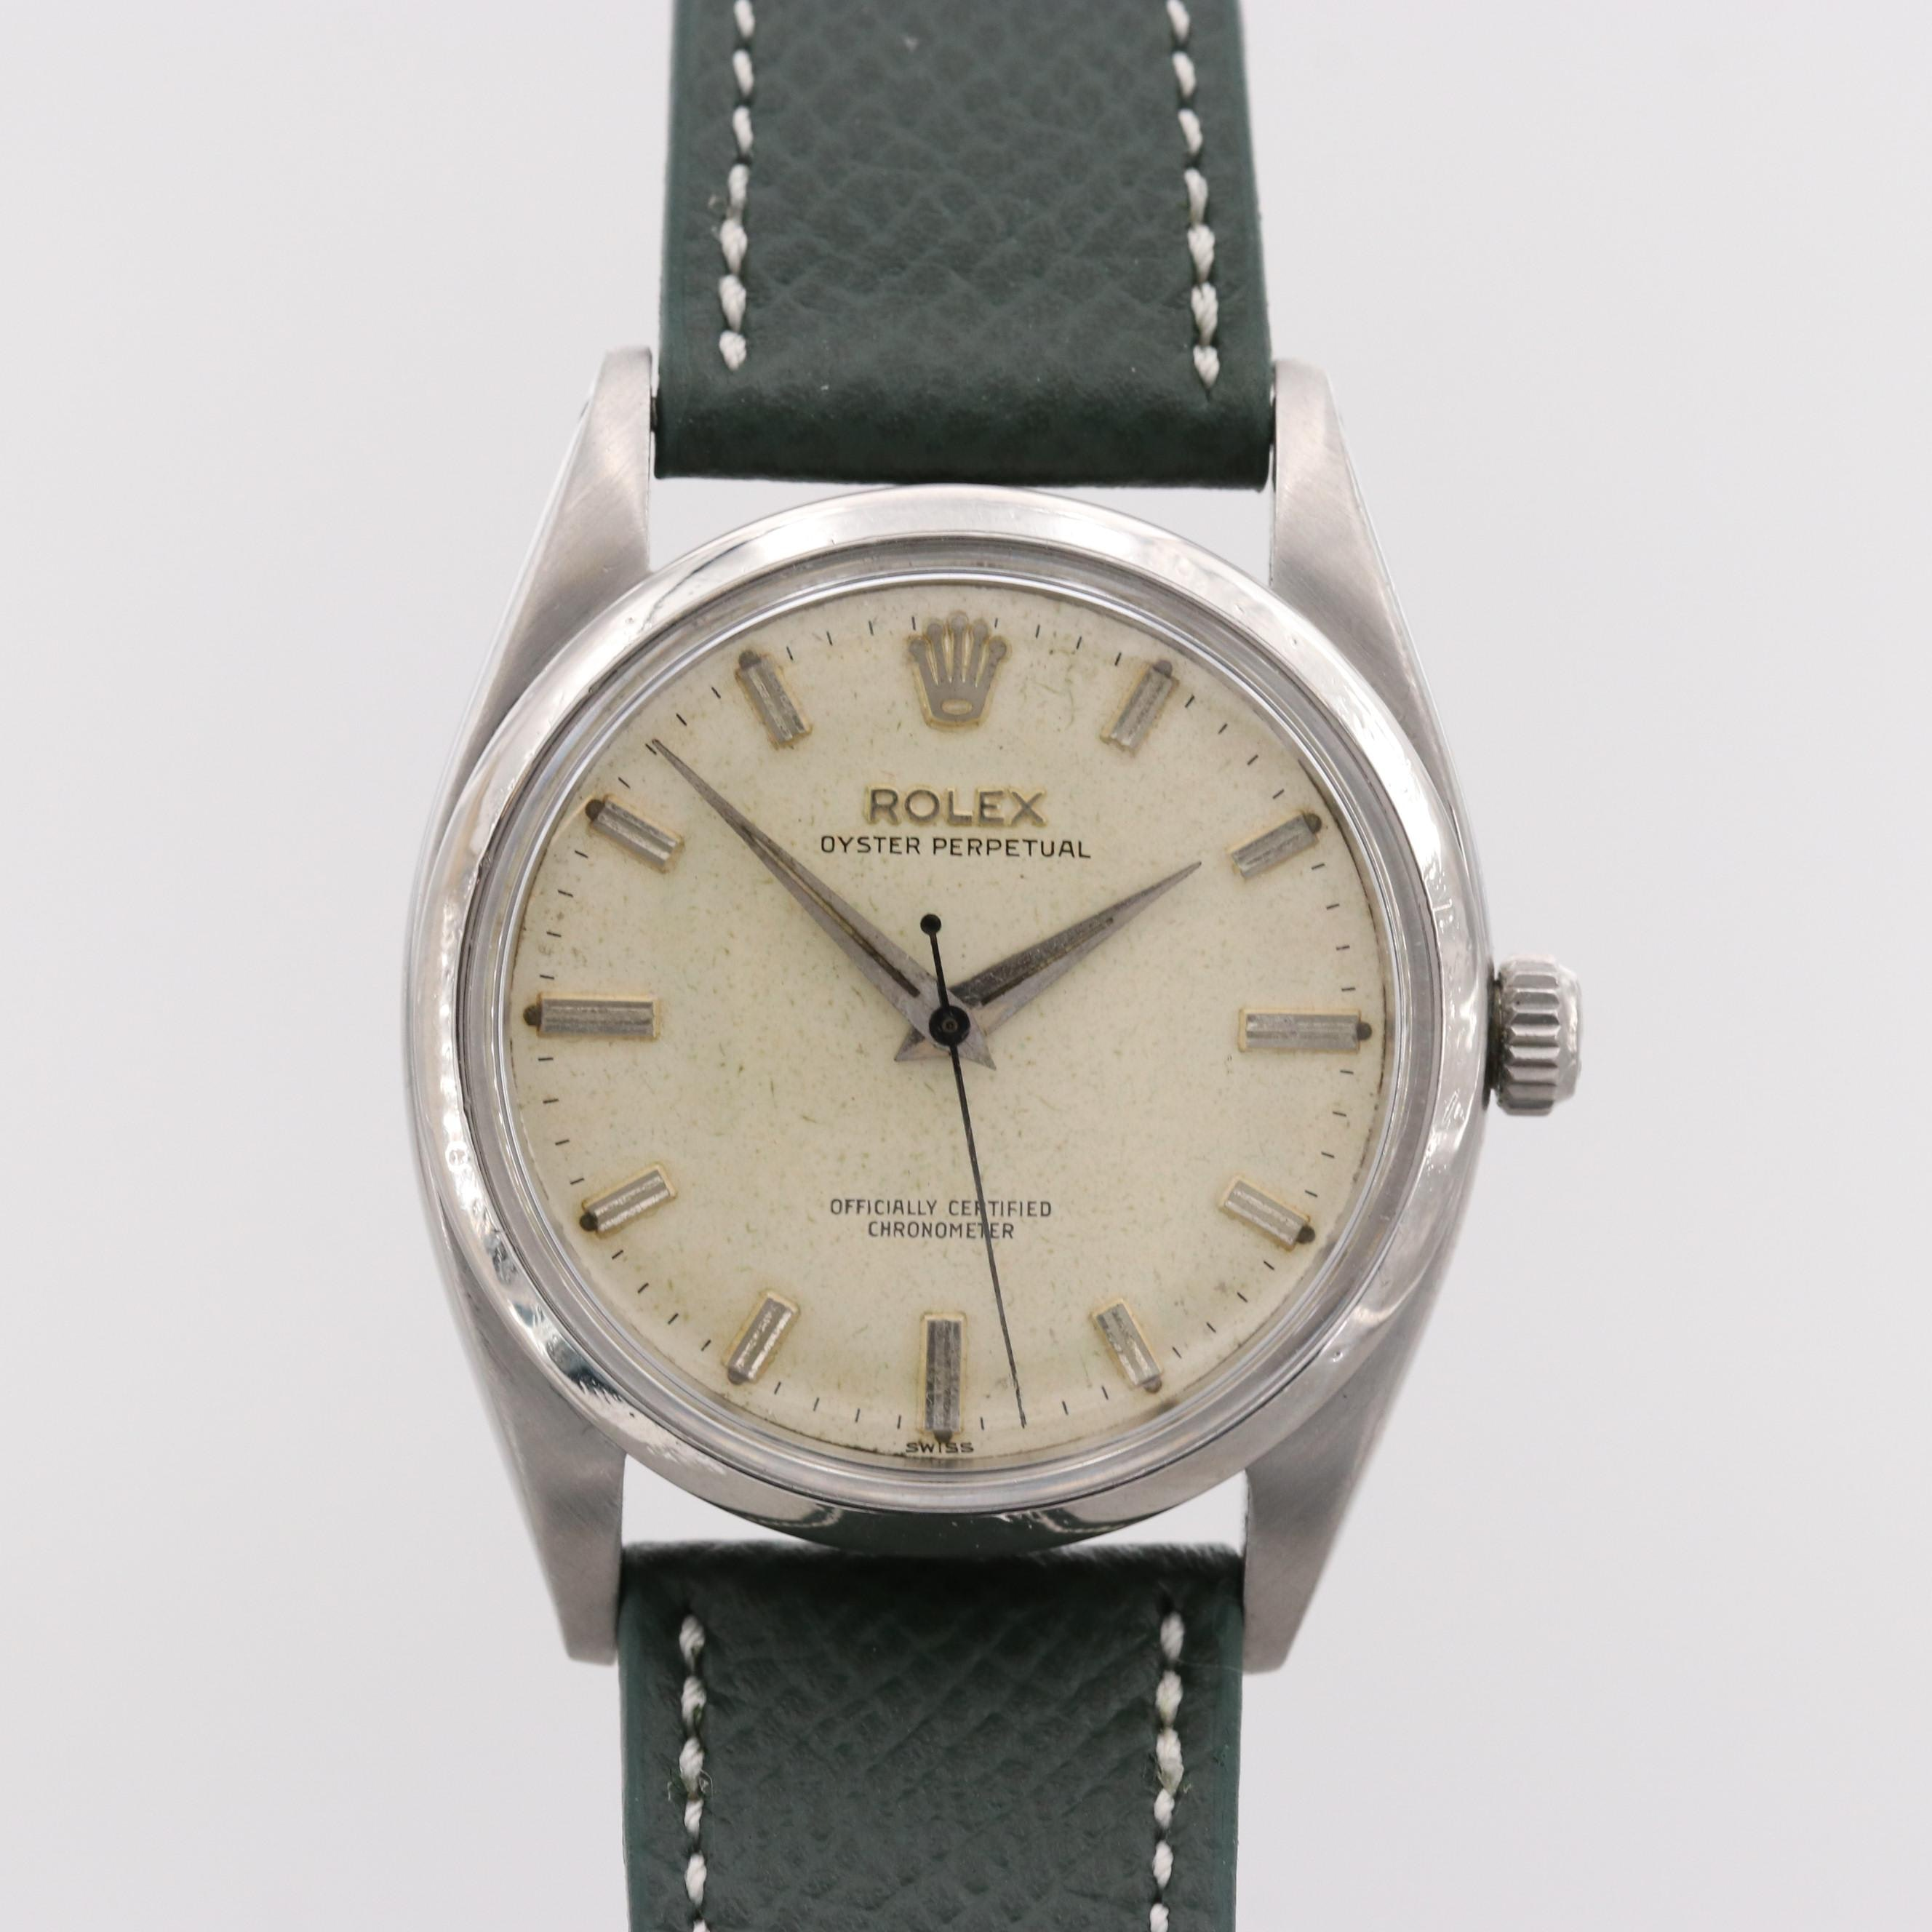 Rolex Oyster Perpetual Stainless Steel Wristwatch, 1957